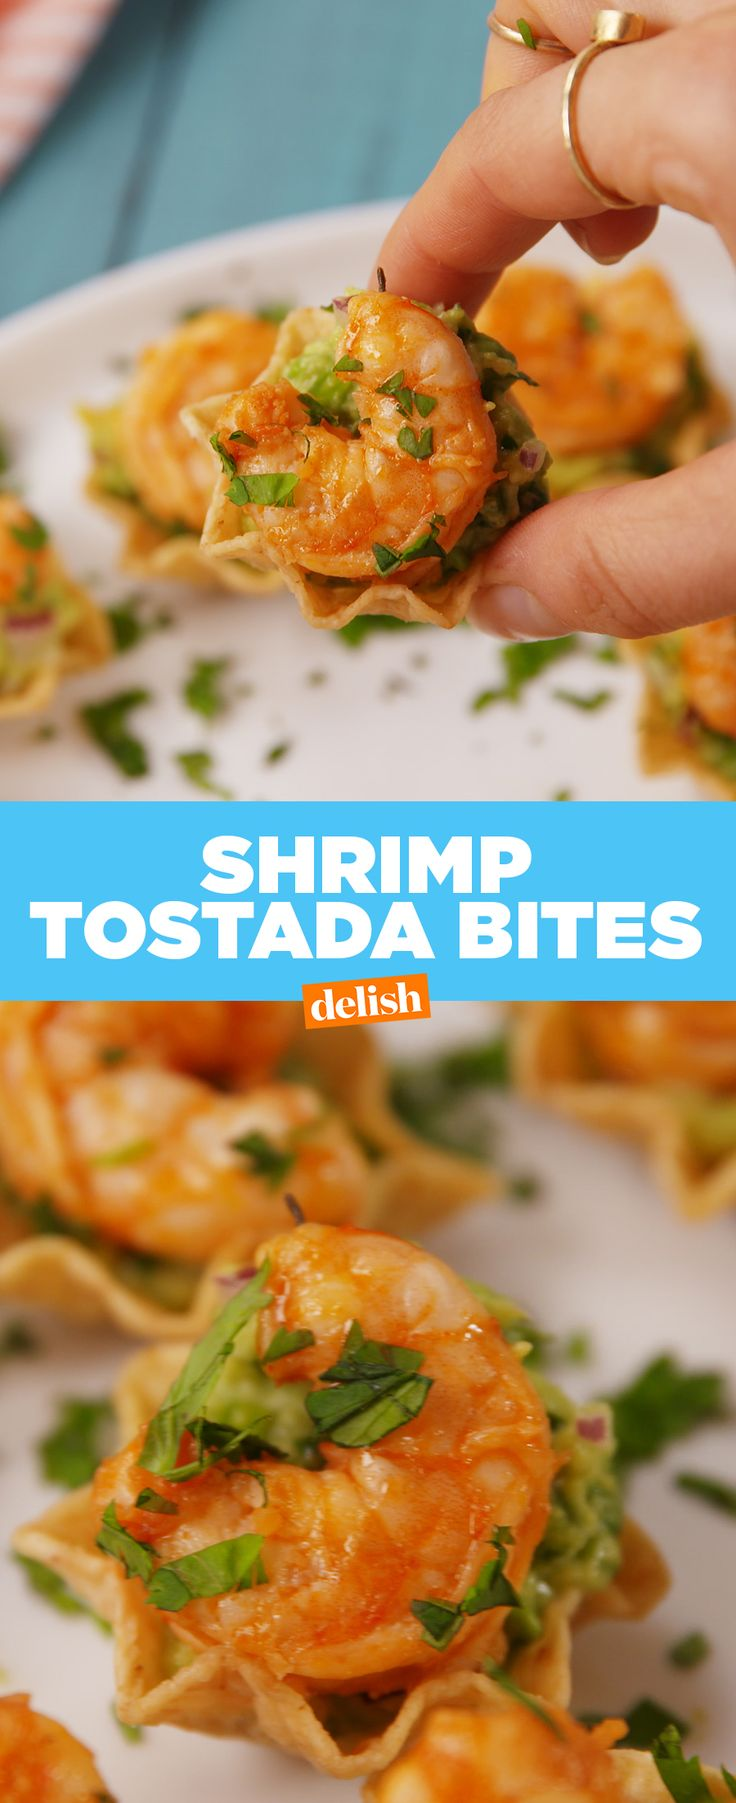 Shrimp Tostada Bites are the easiest app to serve at your summer cookout. Get the recipe from Delish.com.